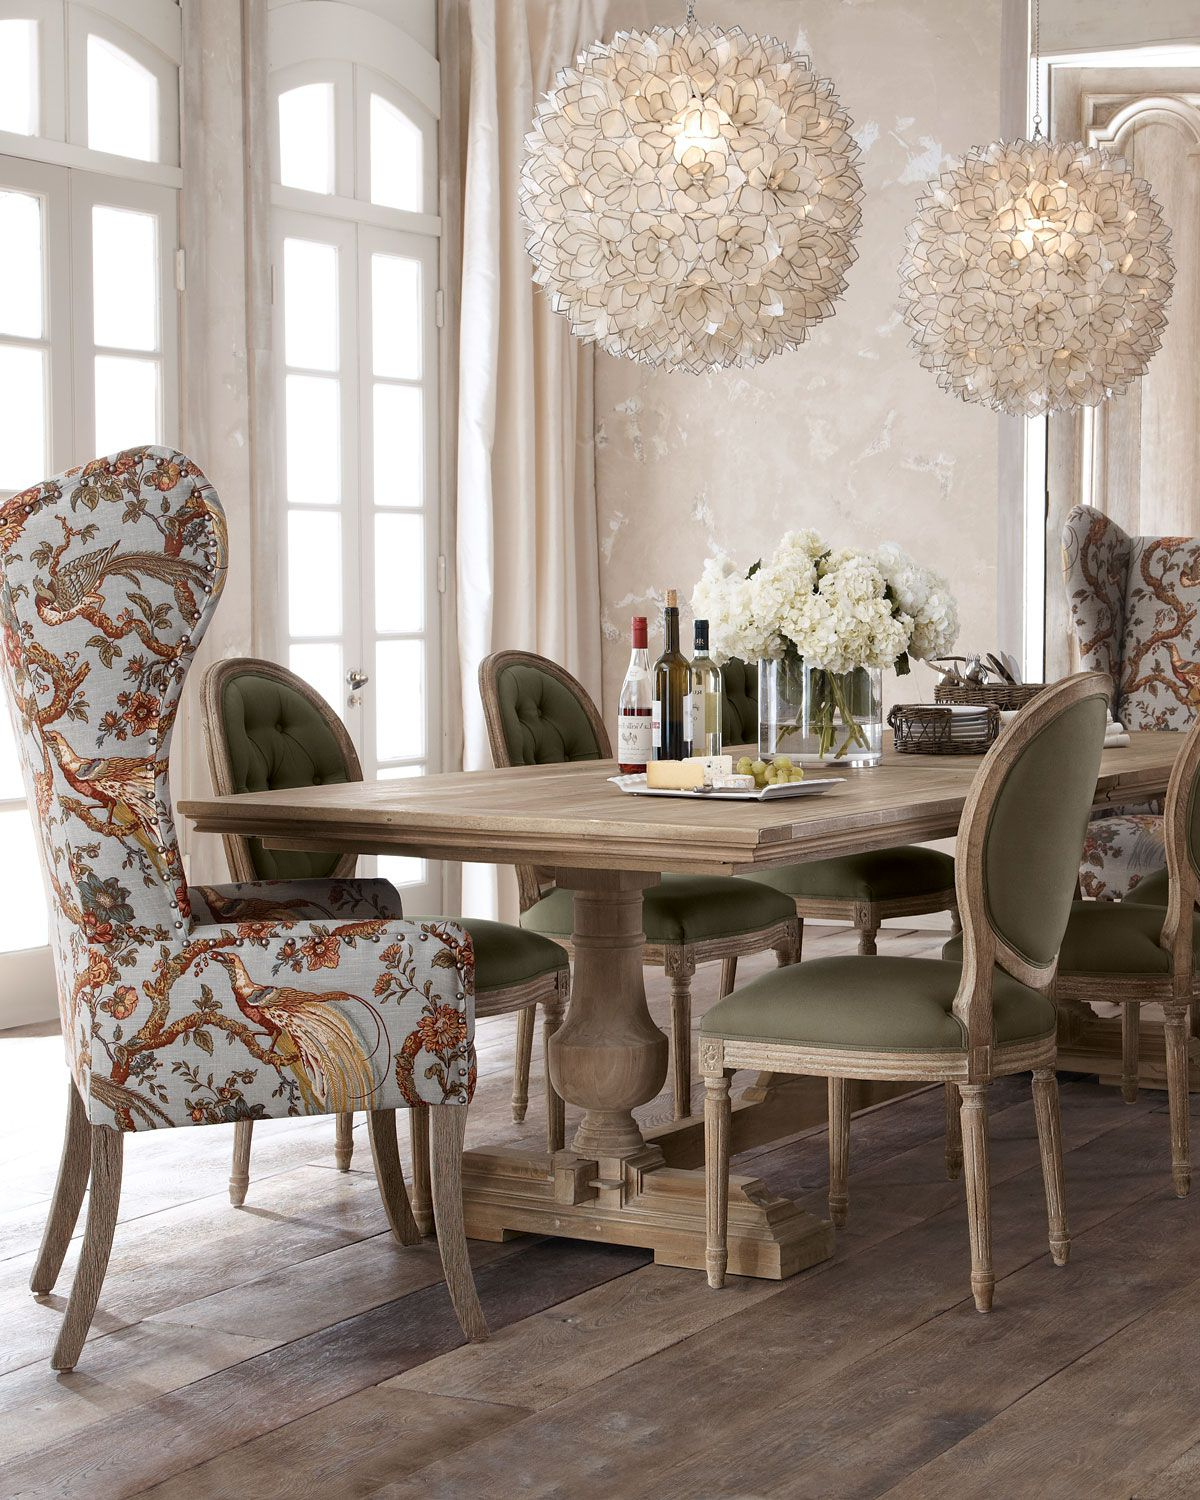 "Evelyn"" Dining Table, ""blanchett"" Side Chair, And ""pheasant"" Host With Regard To Chari Media Center Tables (View 8 of 20)"